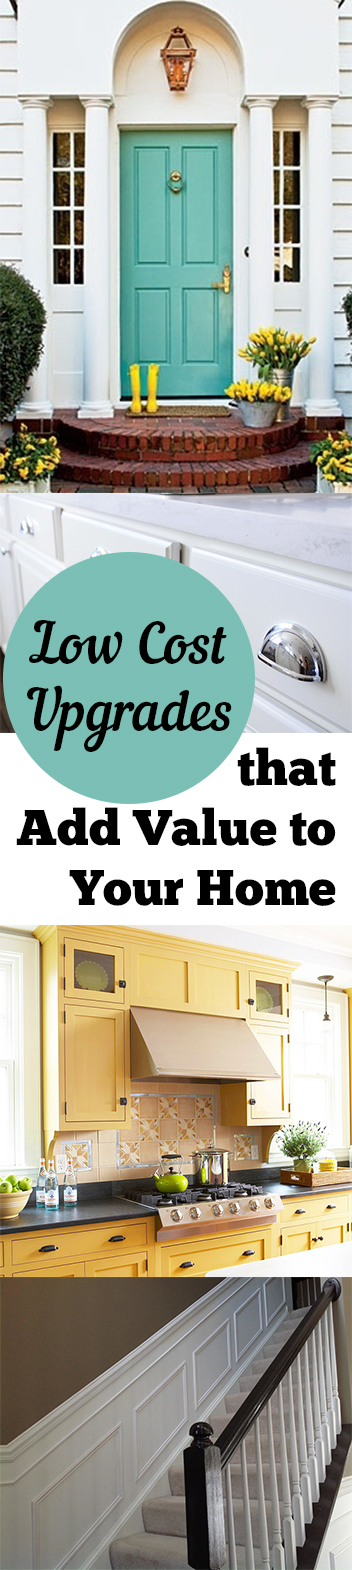 Outstanding Home Upgrades That Add Value 352 x 1570 · 412 kB · jpeg